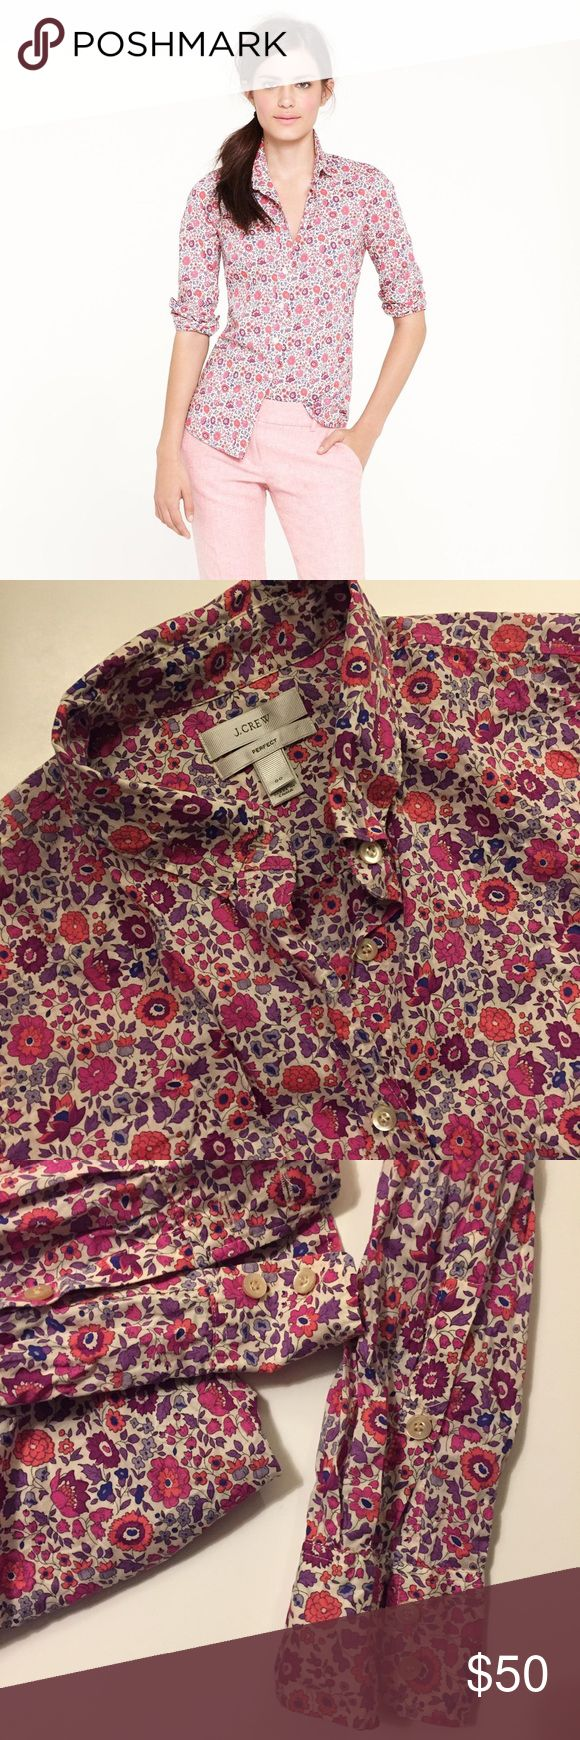 J.Crew Liberty Perfect Shirt Perfect shirt features a slimming waist defining fit that is crafted with the beautiful D'Anjou print from British Liberty Fabrics. 100% cotton. J. Crew Tops Button Down Shirts